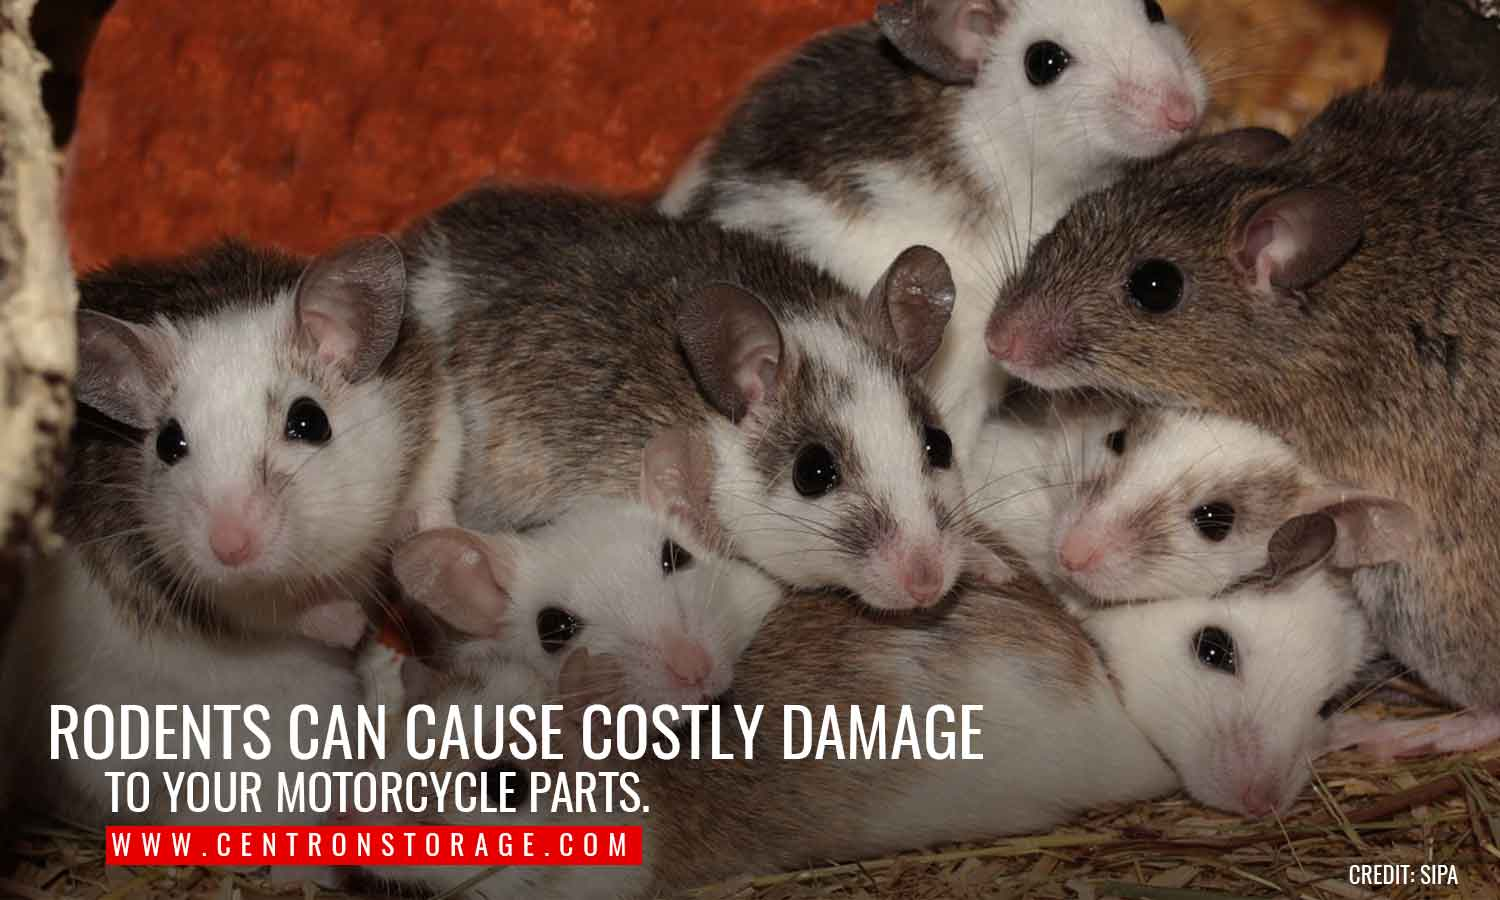 Rodents can cause costly damage to your motorcycle parts.